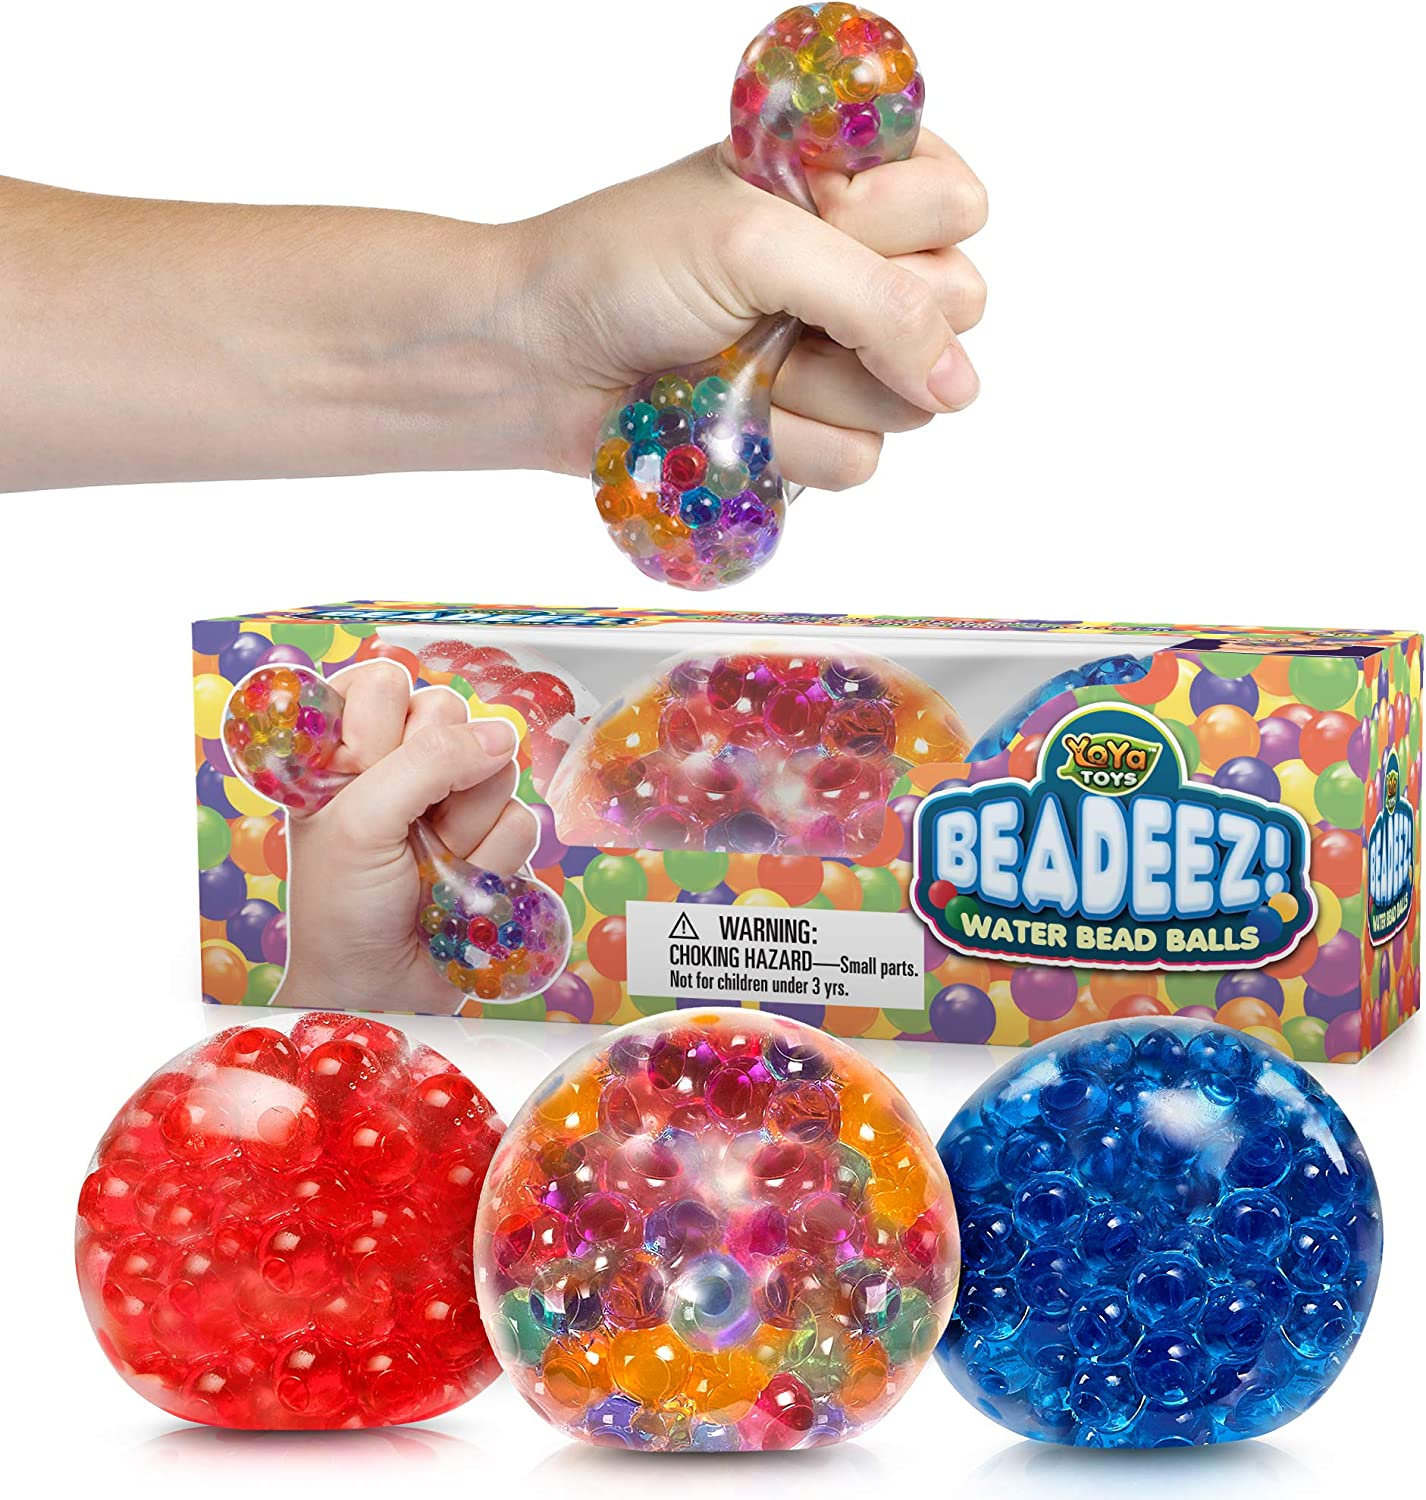 Soft Fidget Stretchy Toy Set for Calming Stress Balls Anxiety Relief Squeeze Balls Toy for Kids and Adults Stress Relief 12 Pack Sensory Squishy Balls with Water Beads